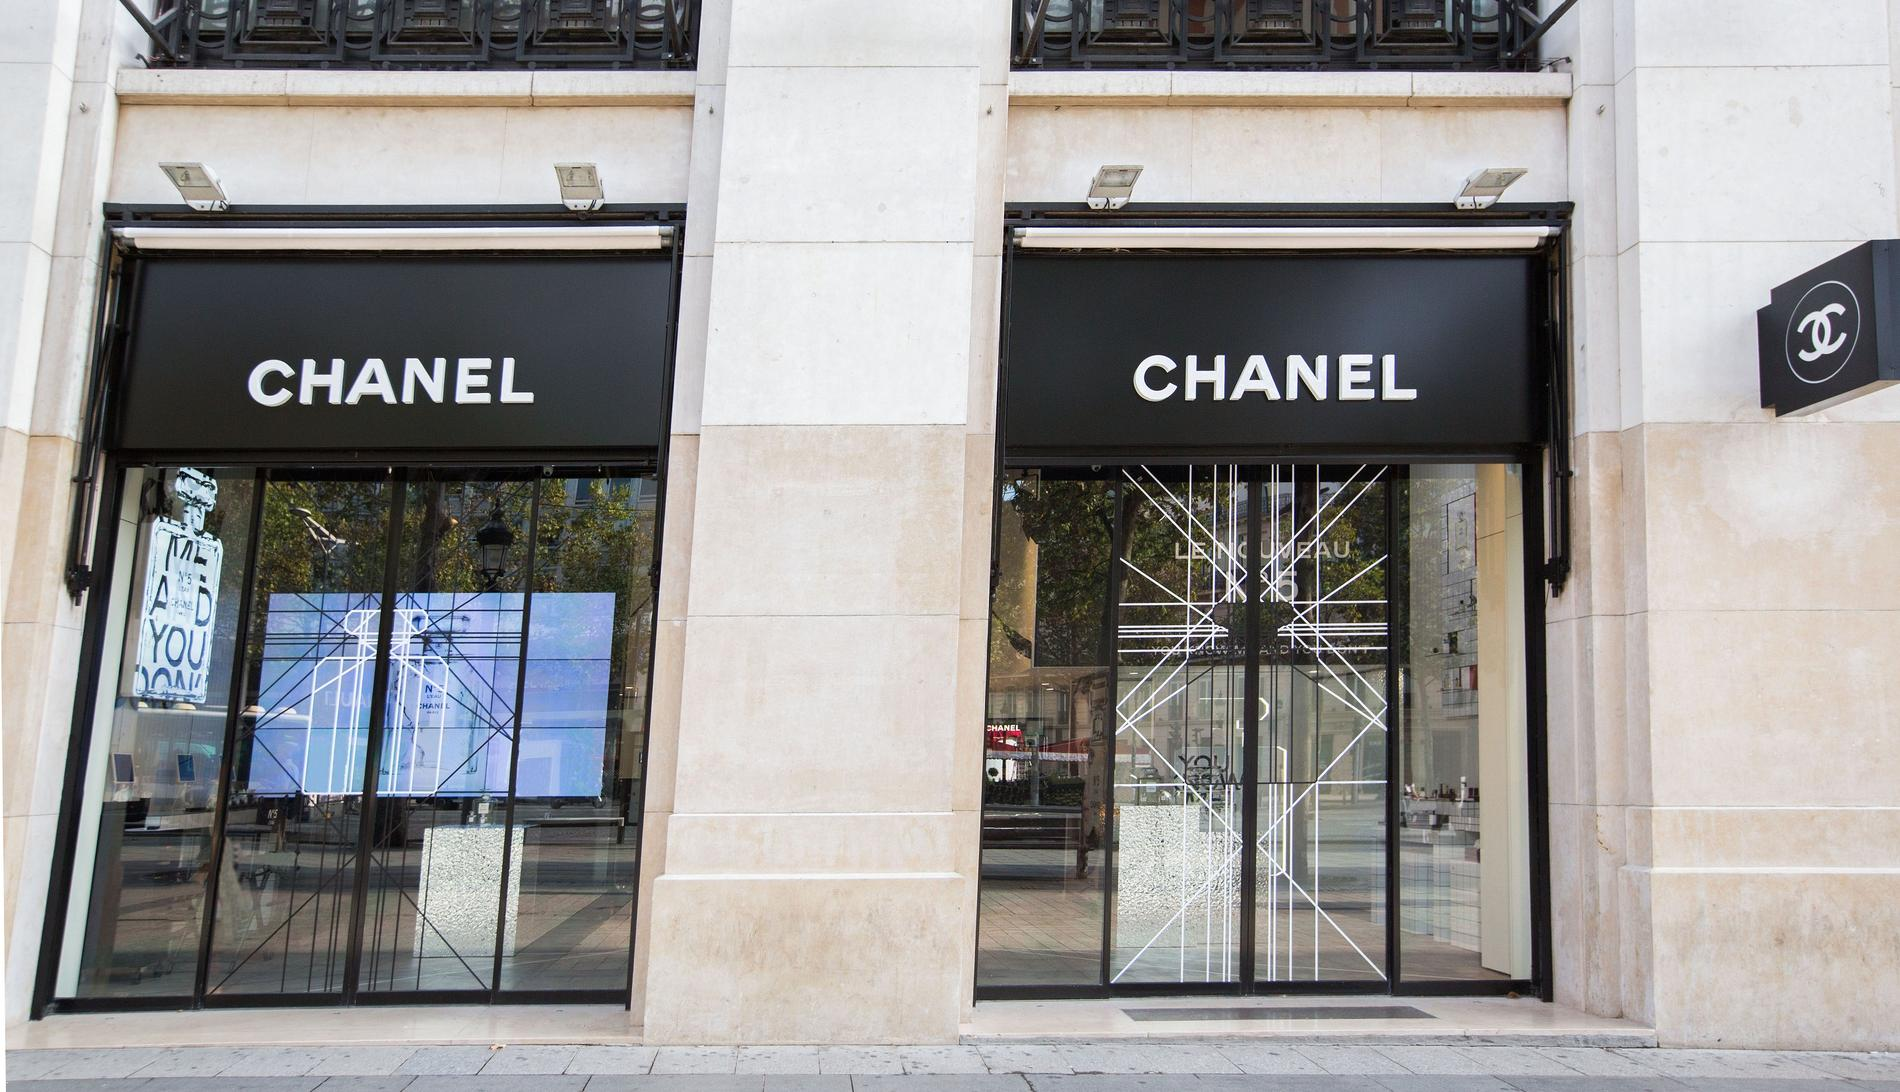 chanel ouvre une boutique d di e la beaut sur les champs. Black Bedroom Furniture Sets. Home Design Ideas